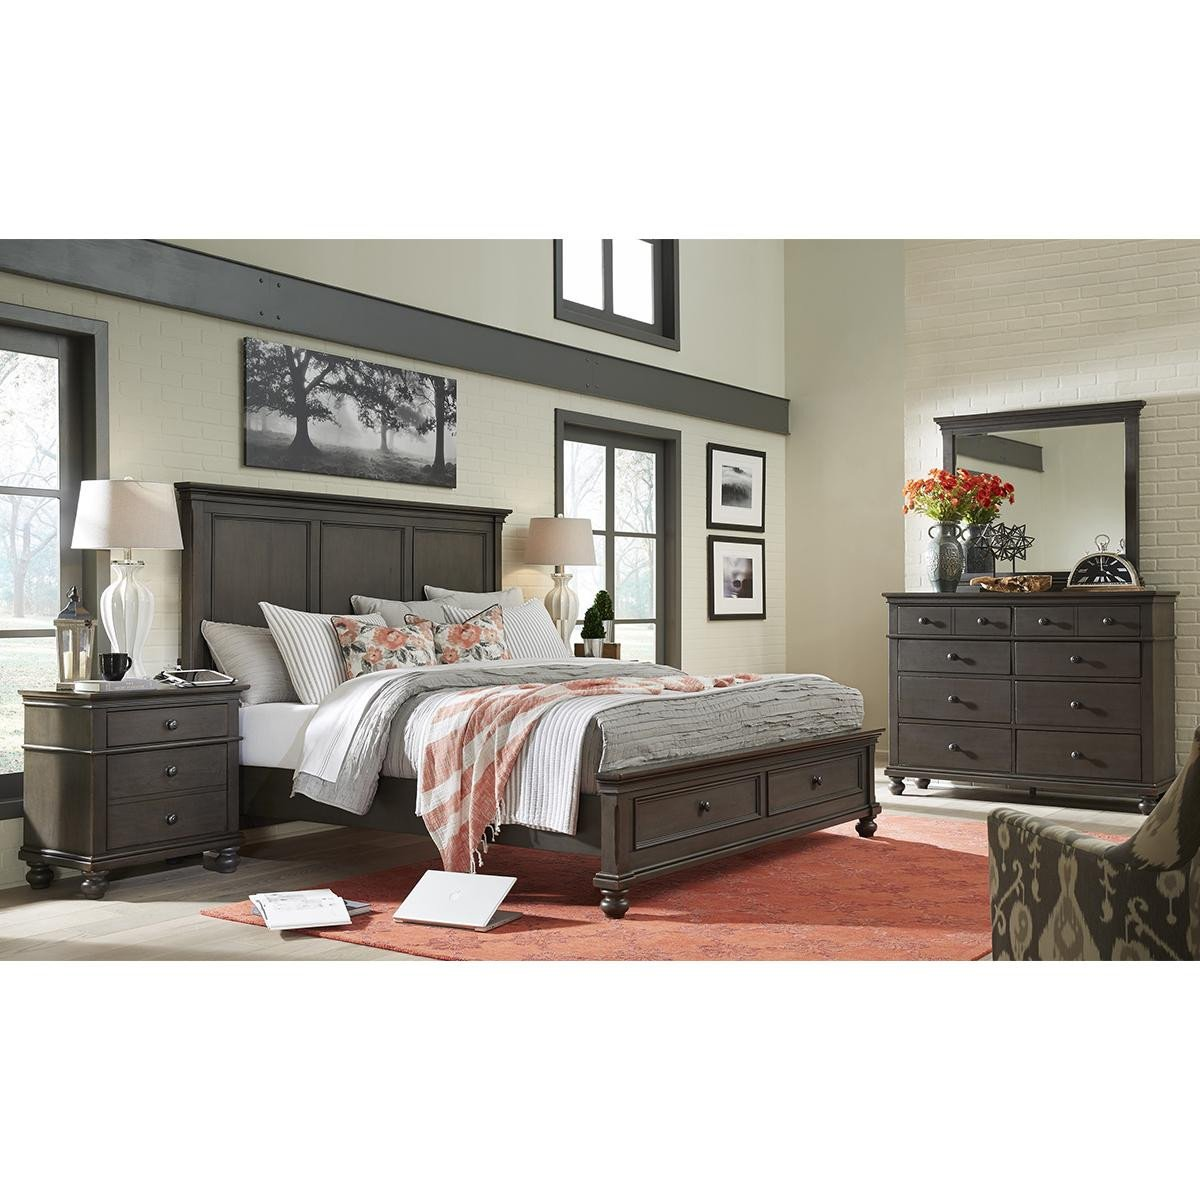 Cheap California King Bedroom Set Beautiful Riva Ridge Oxford 4 Piece King Bedroom Set In Peppercorn